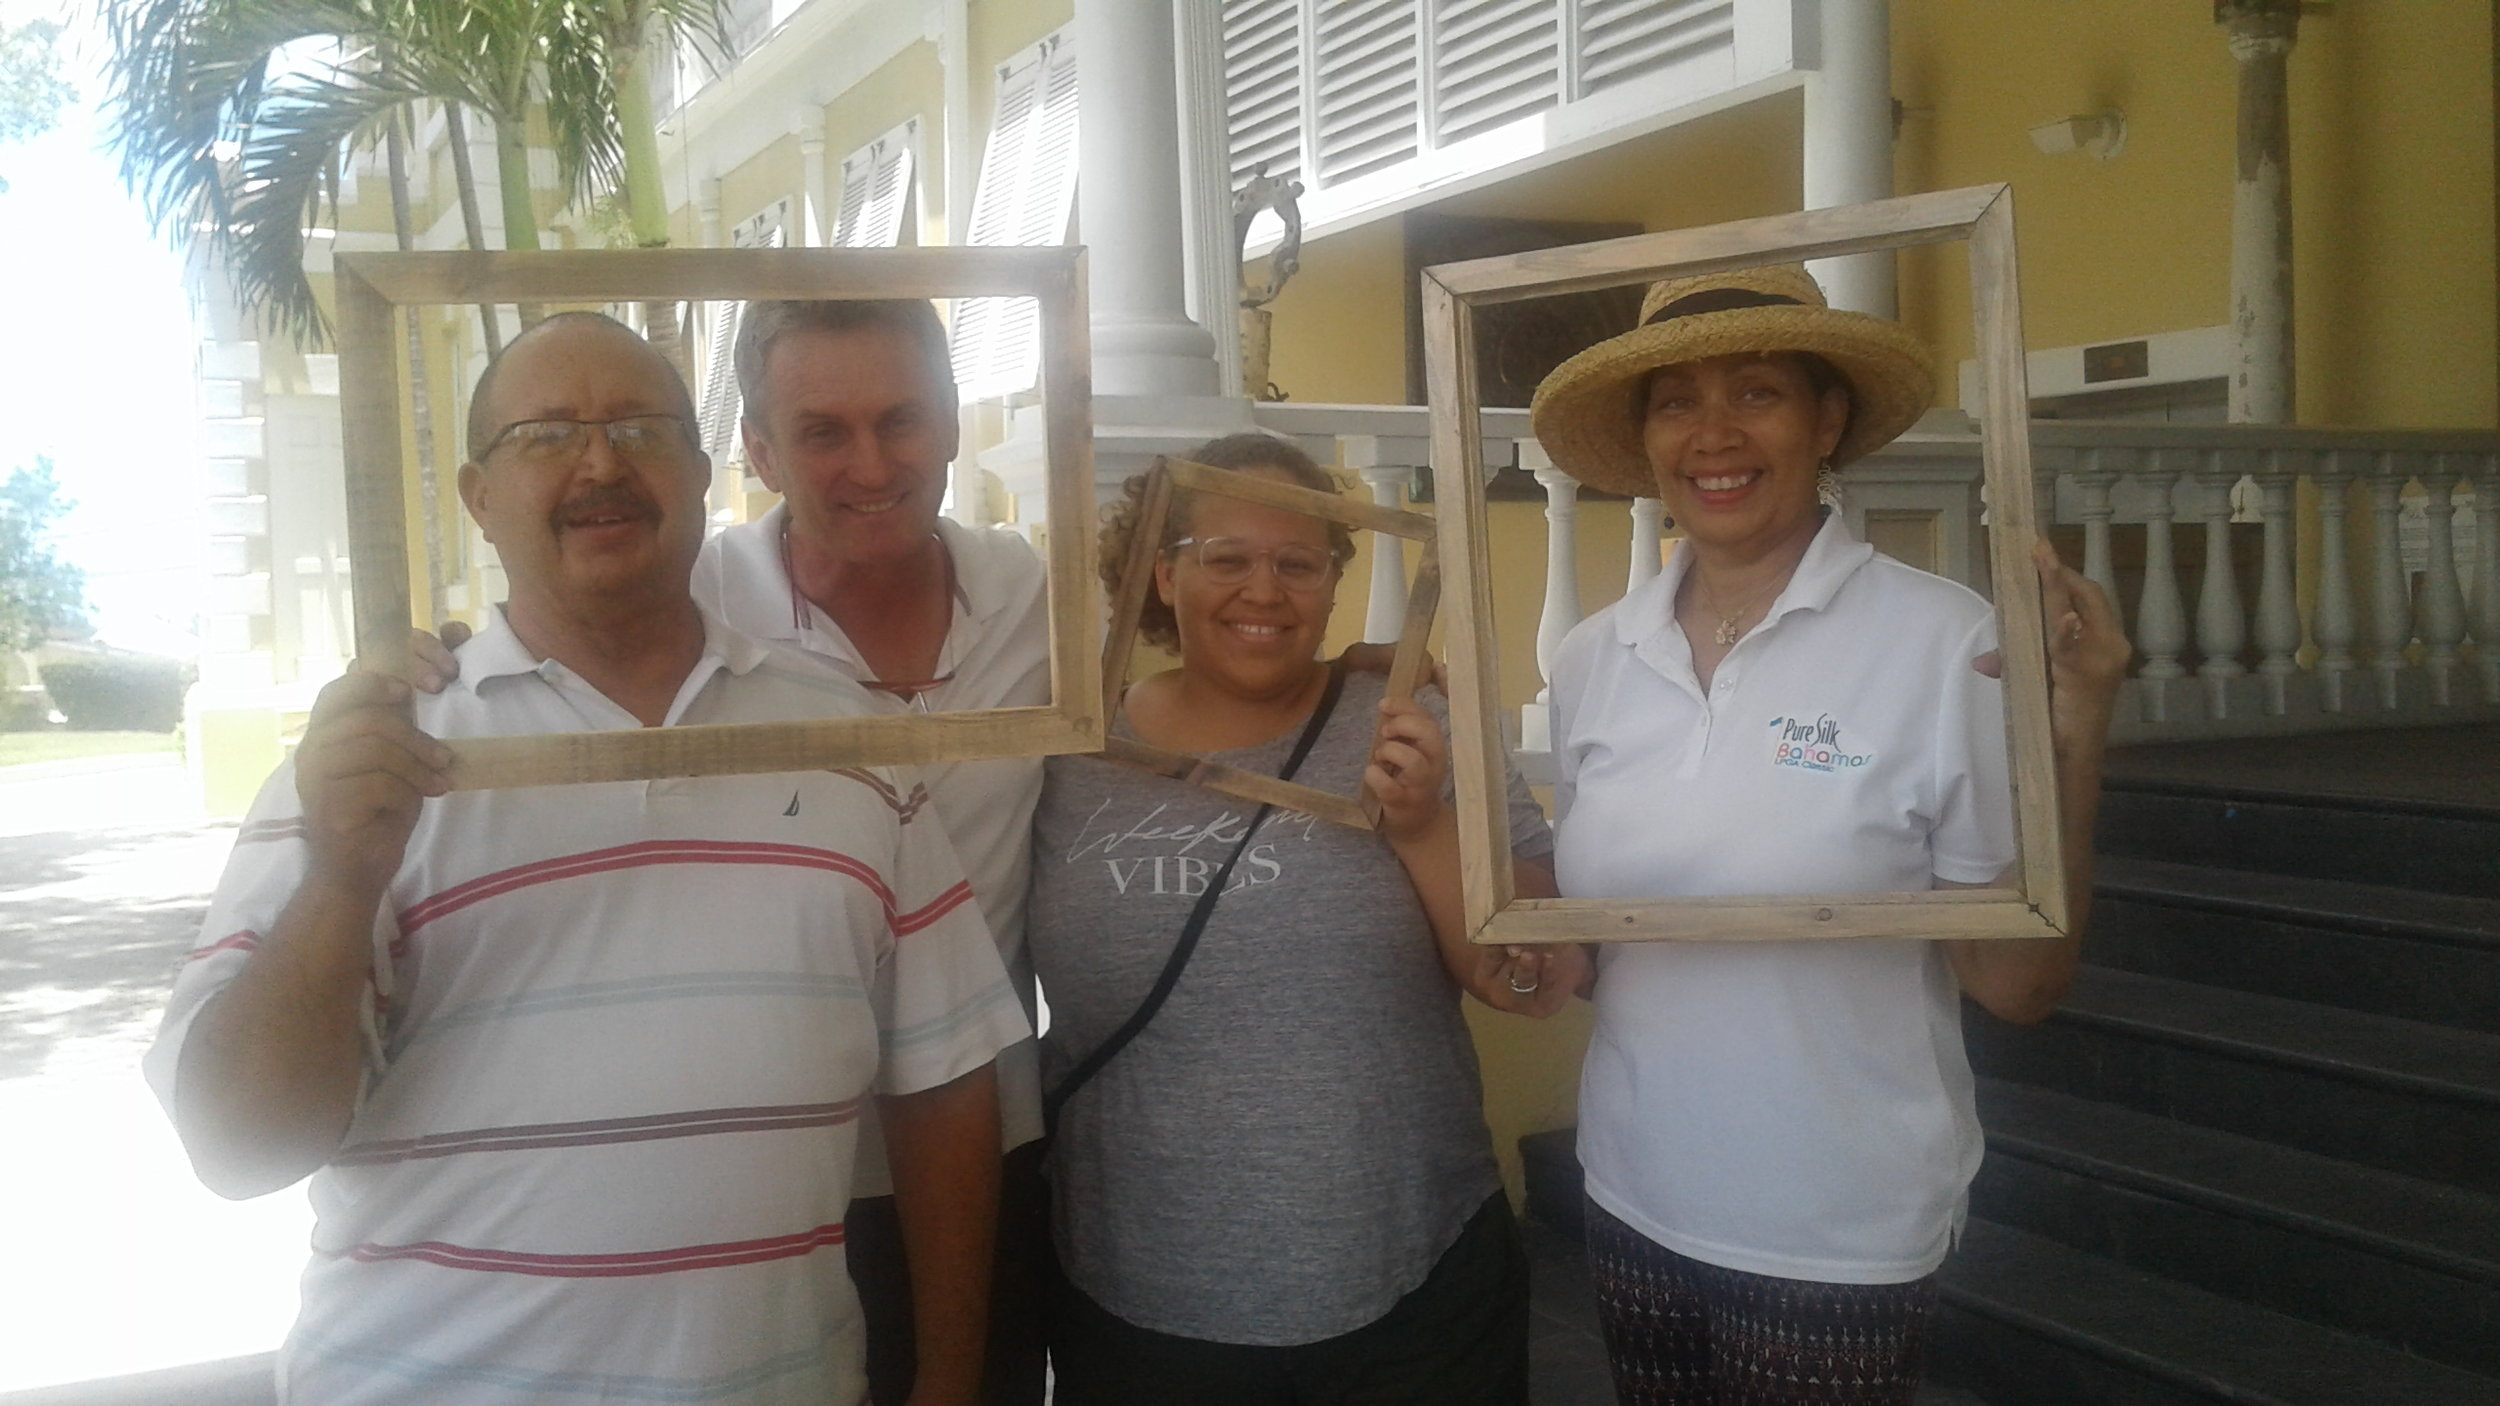 Artist Thierry Lamare and several participants proudly display their frames.